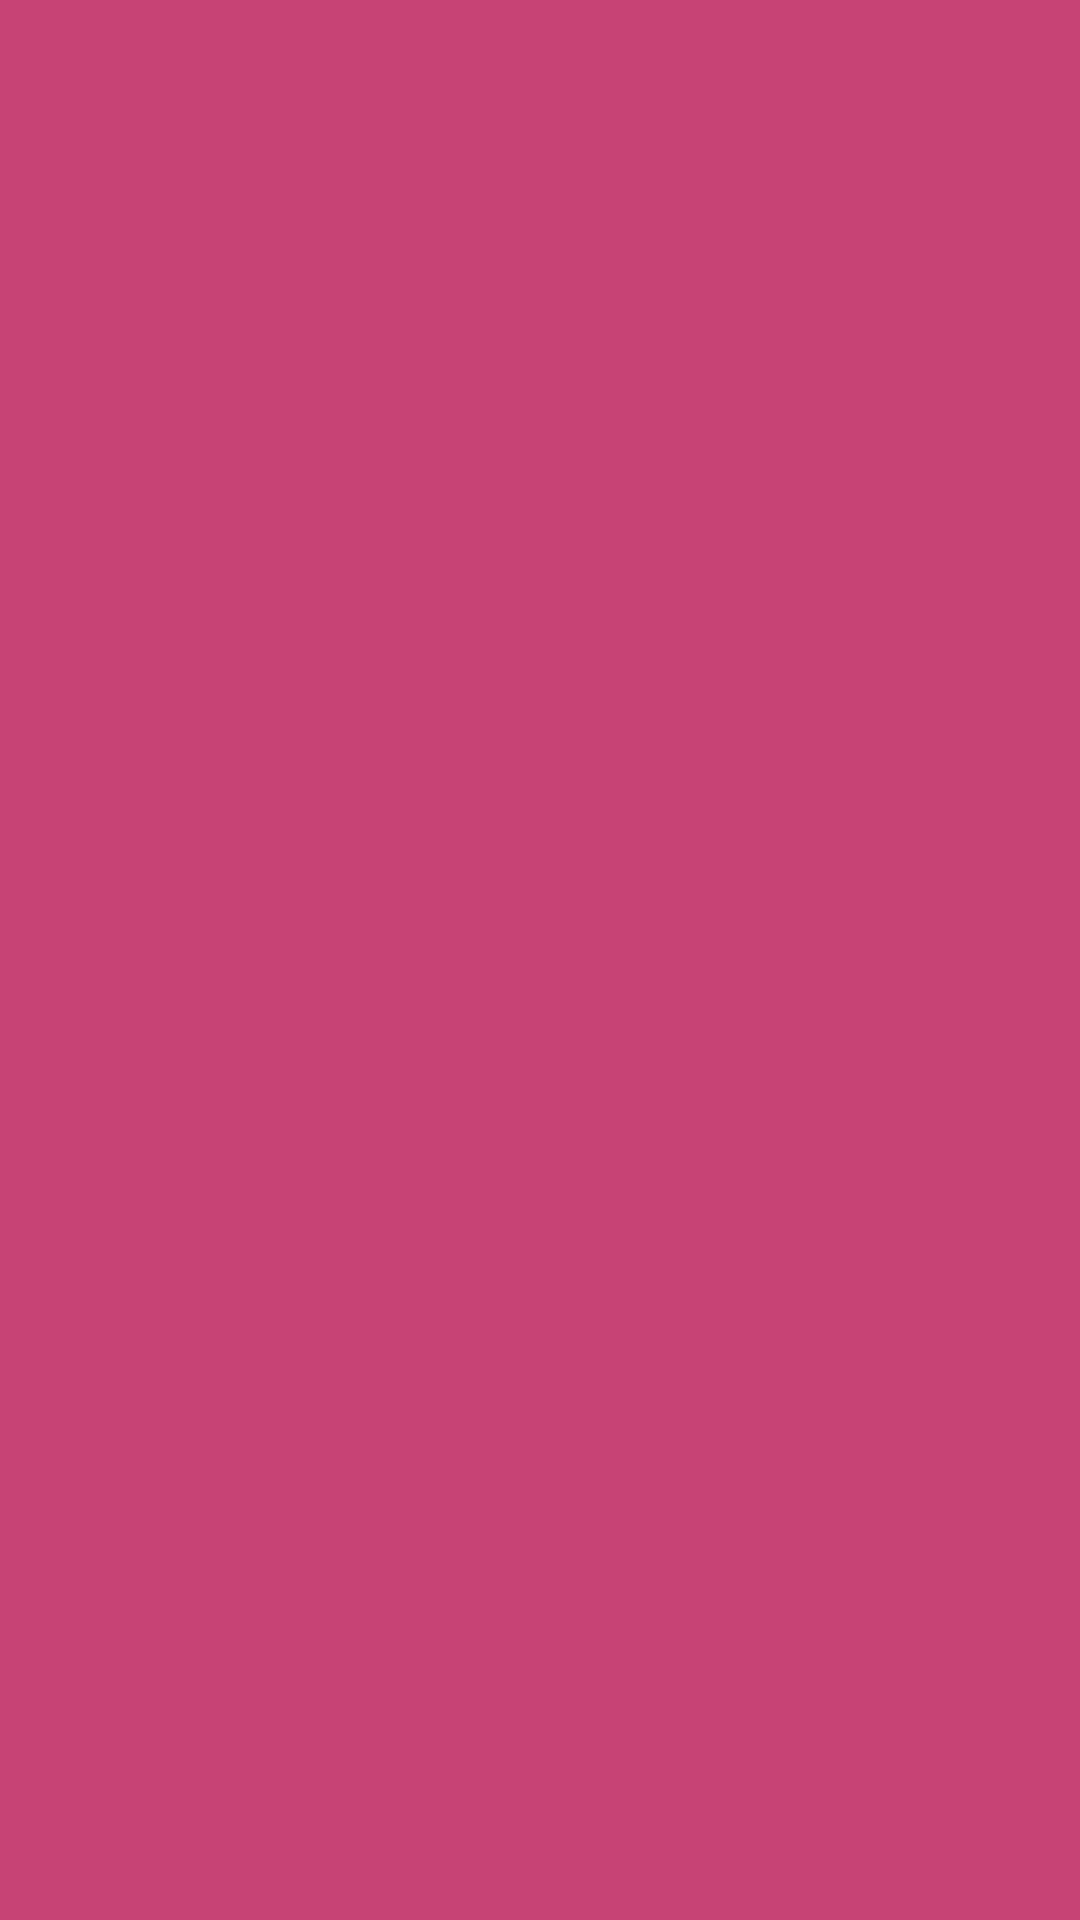 1080x1920 Fuchsia Rose Solid Color Background